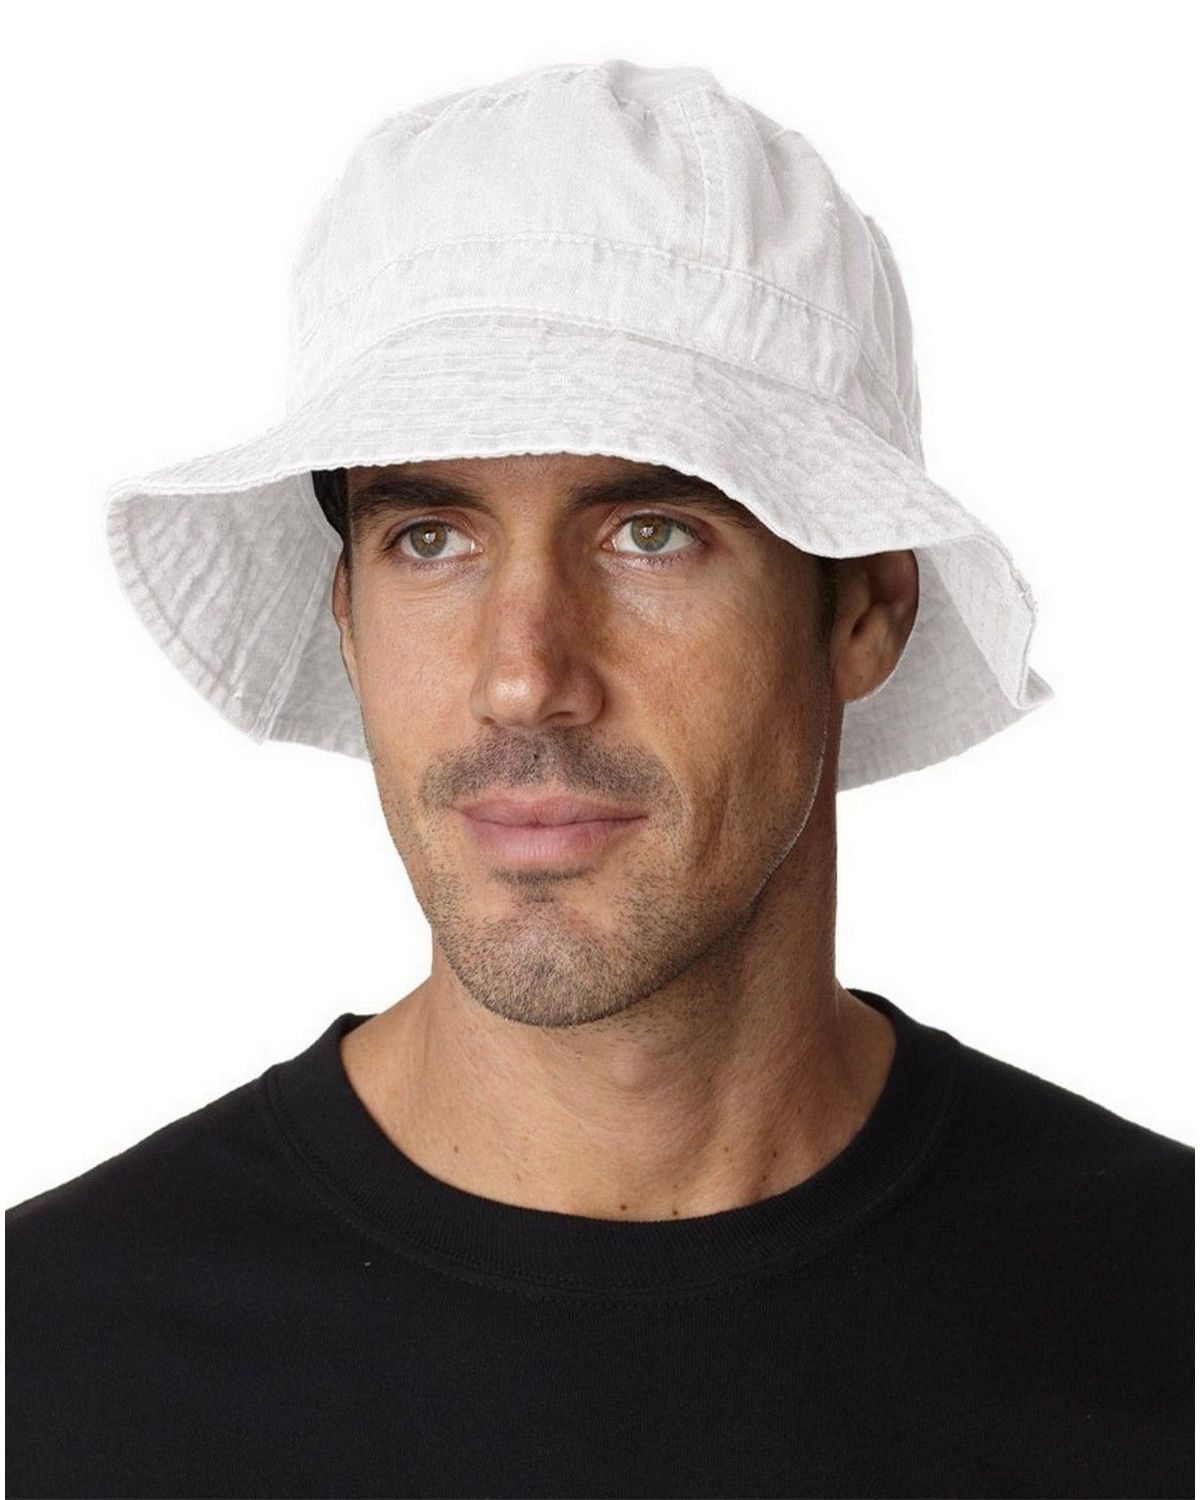 Buy Adams VA101 Adult Bucket Hat 6736ebca5ba